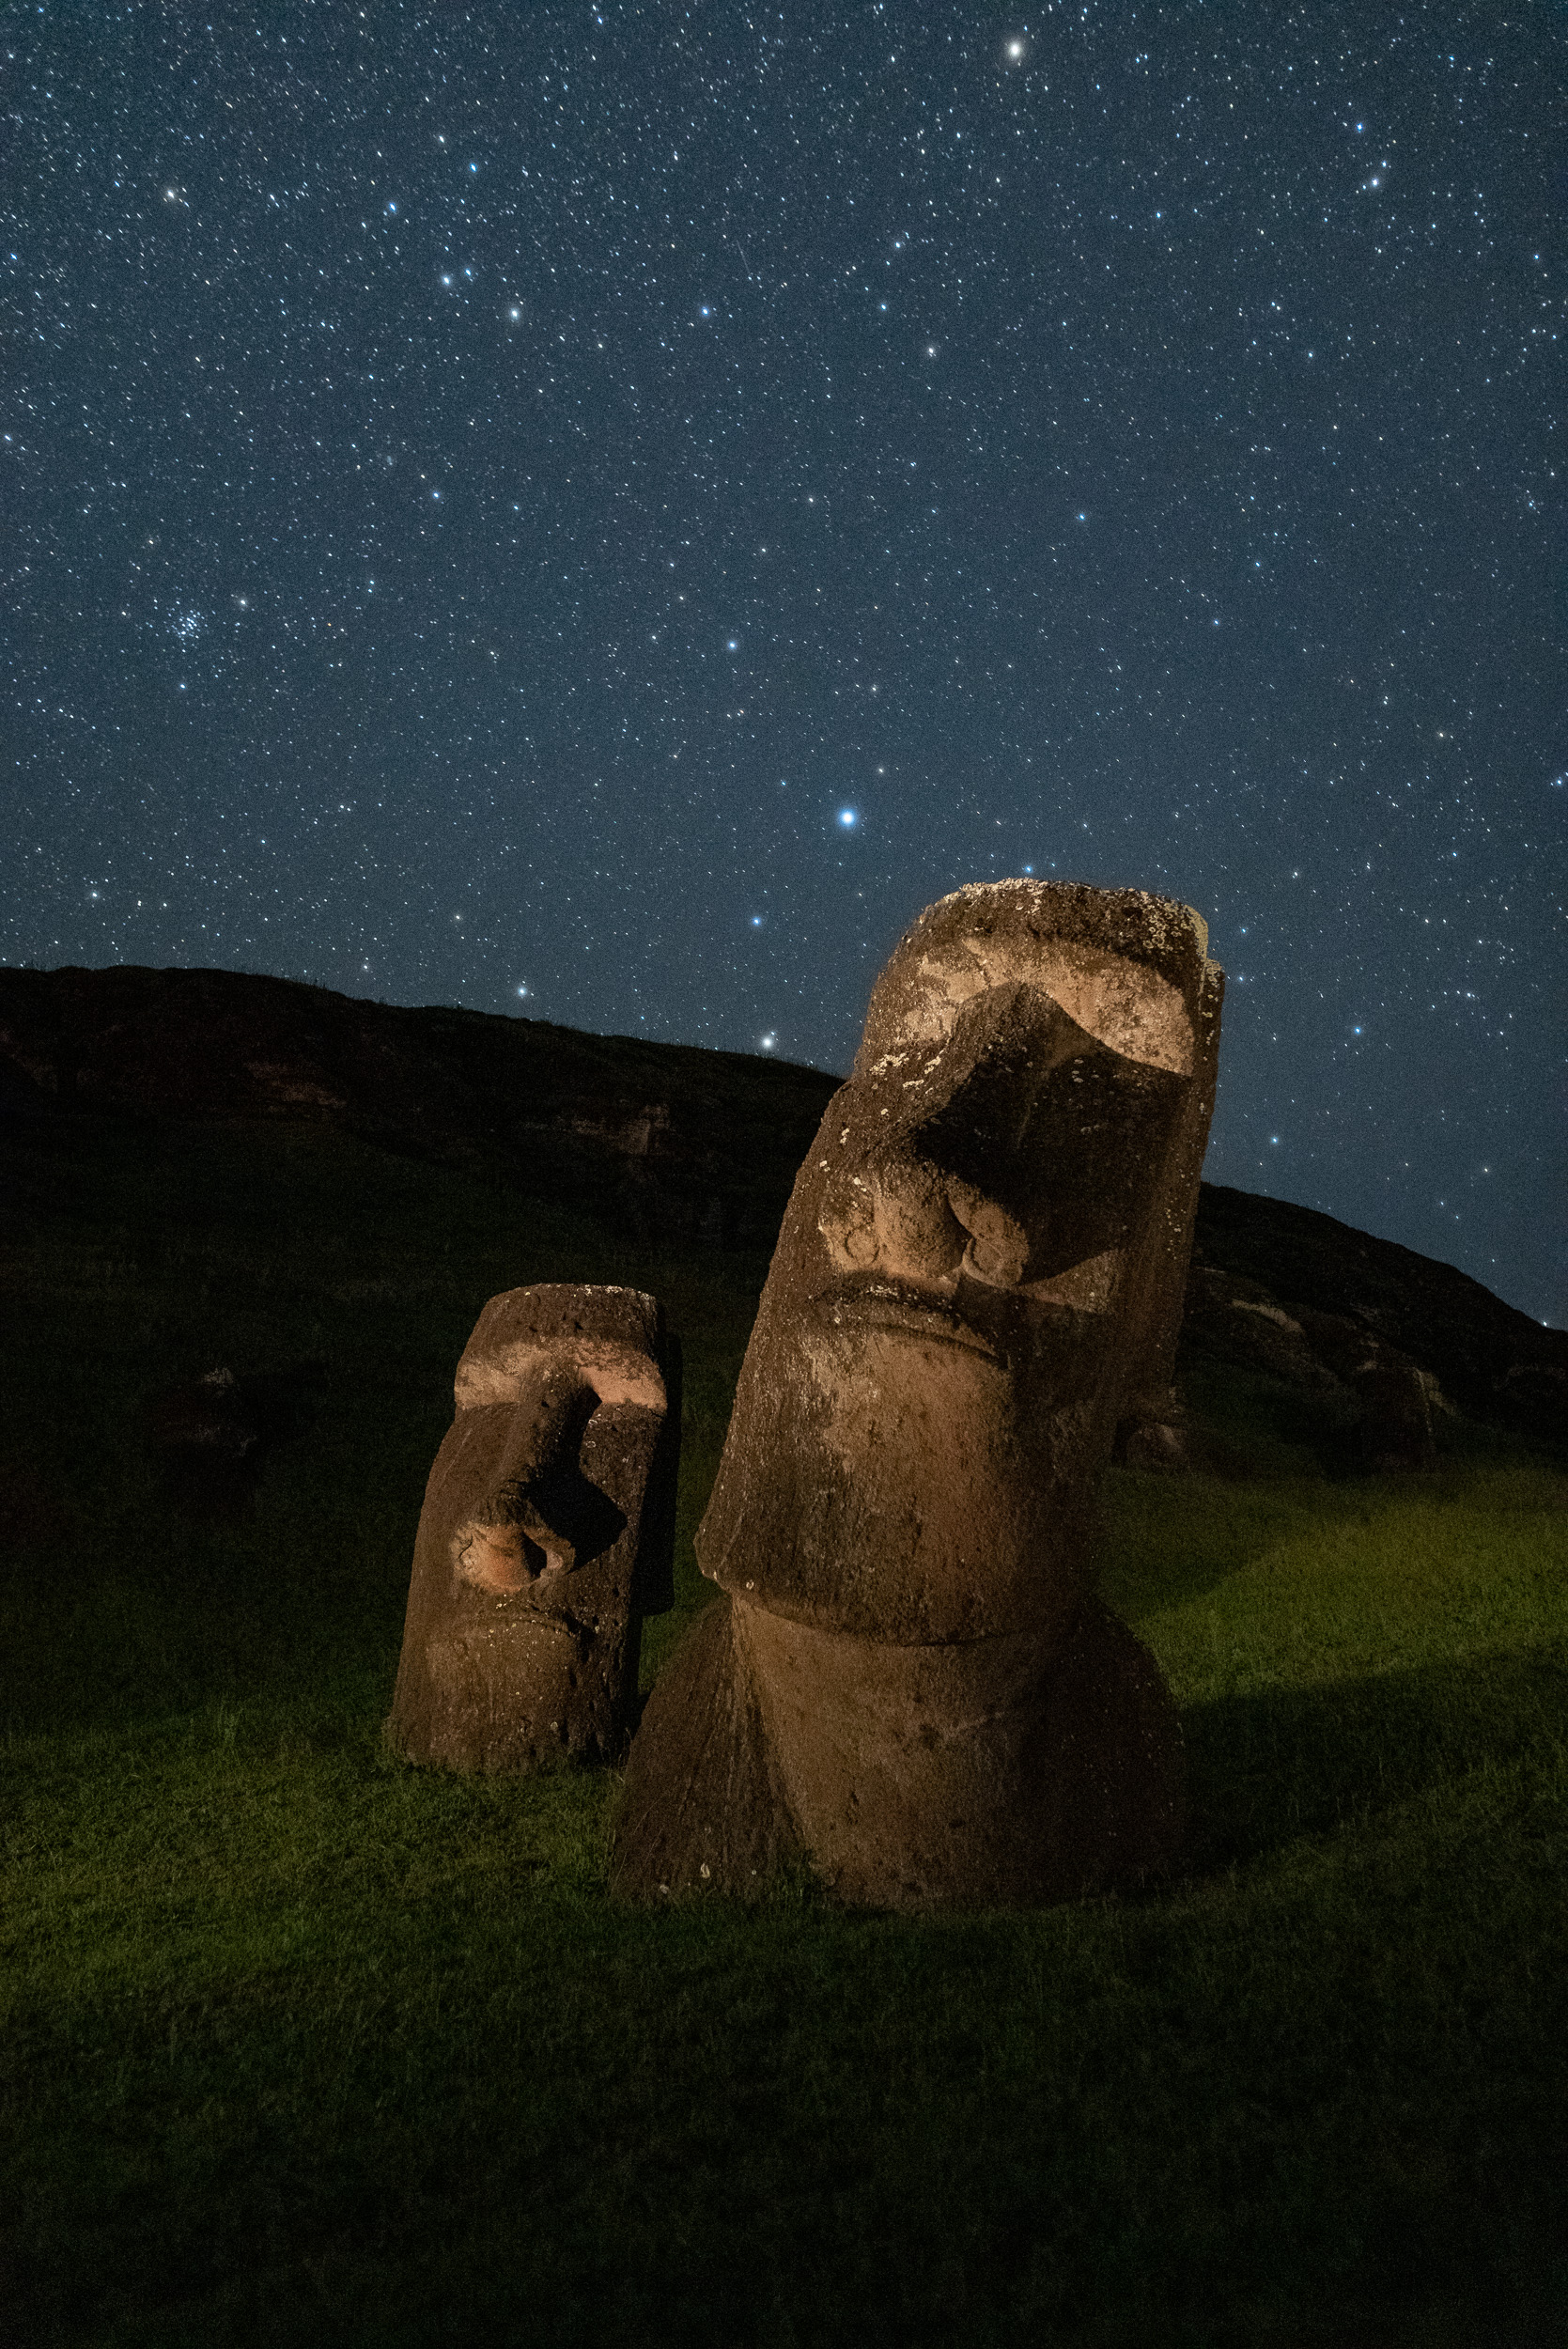 <p><strong>Easter Island</strong><br/> January 25-February 1, 2021</p>